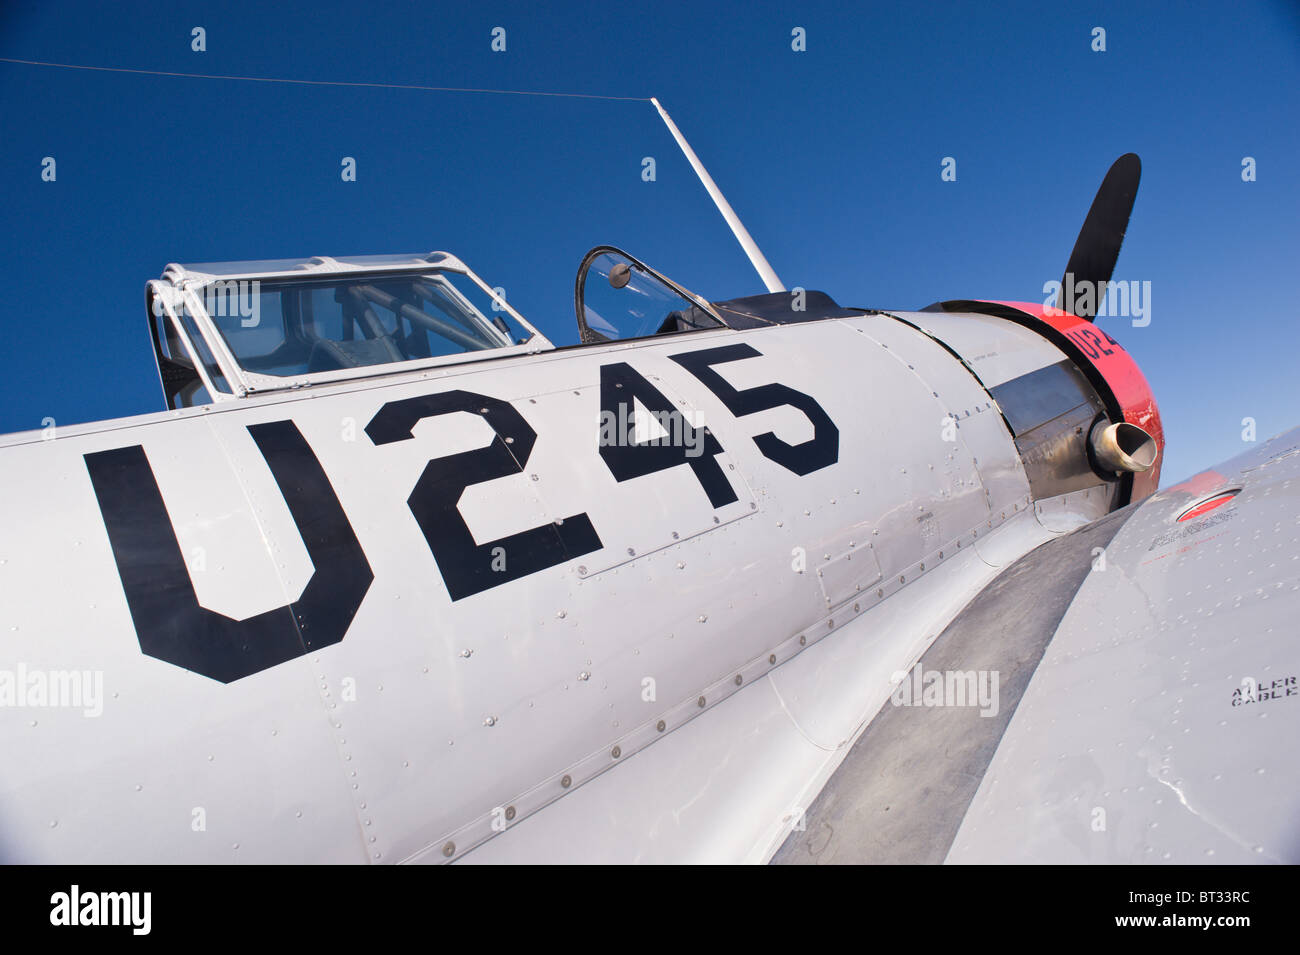 Detail - North American Aviation T-6 Texan, at the Ruidoso Mountain High Fly In, Ruidoso, New Mexico. - Stock Image